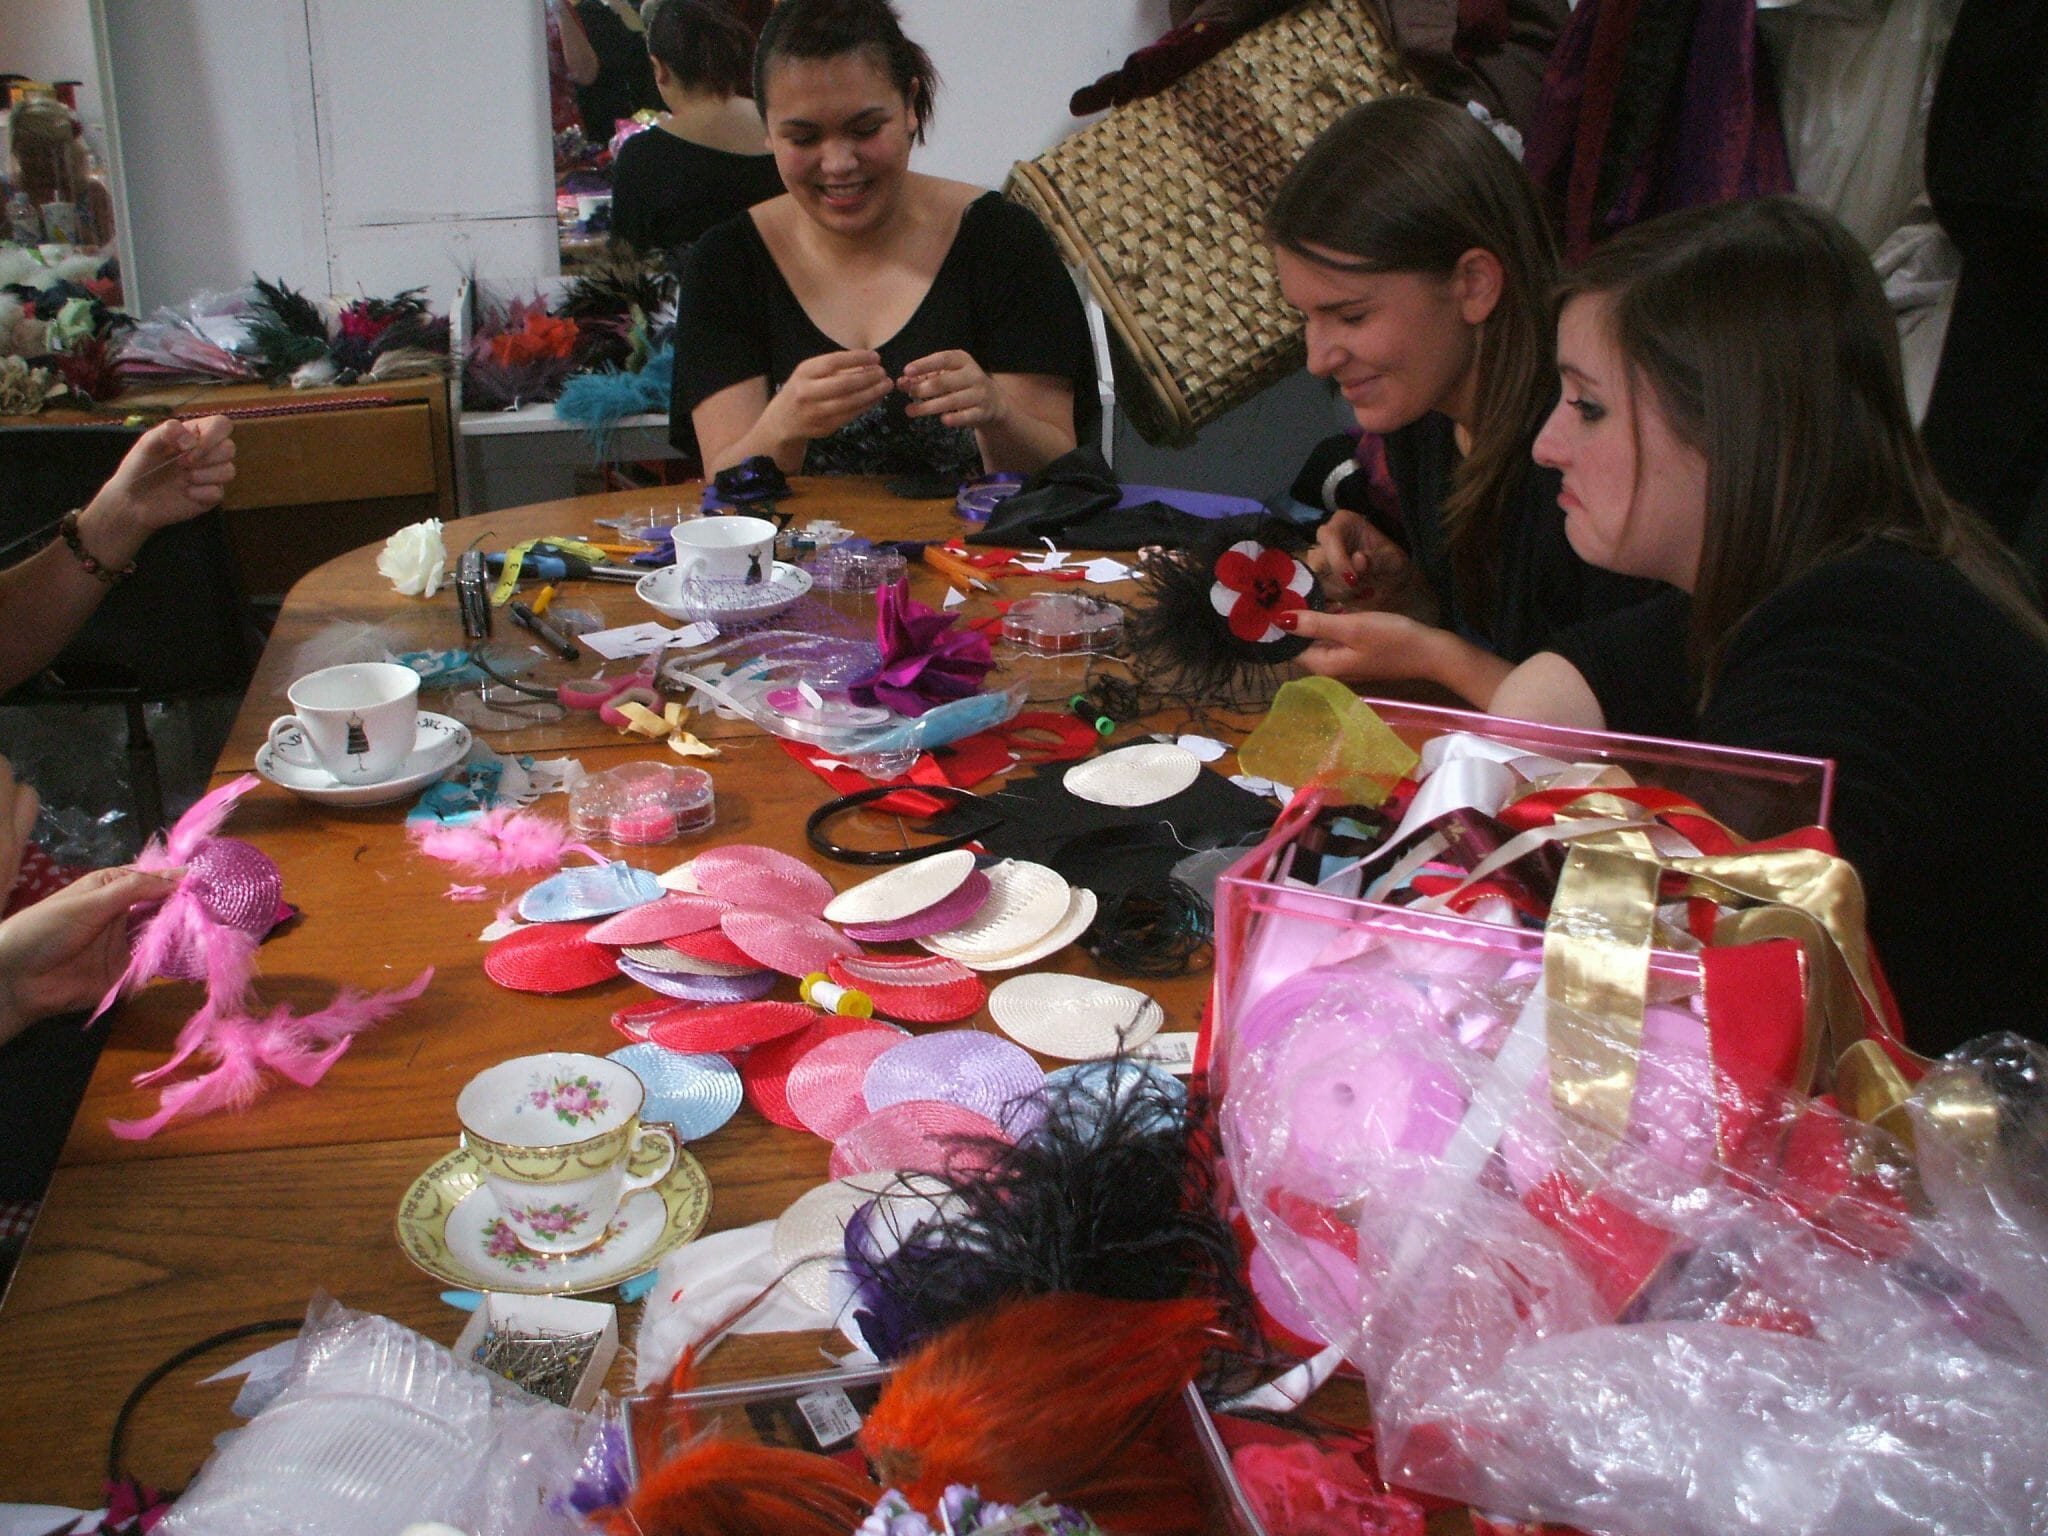 Alternative, unusual, vintage & crafty hen parties & baby showers in Leeds city centre. Fascinator making, jewellery making, bunting, pinnies, and more